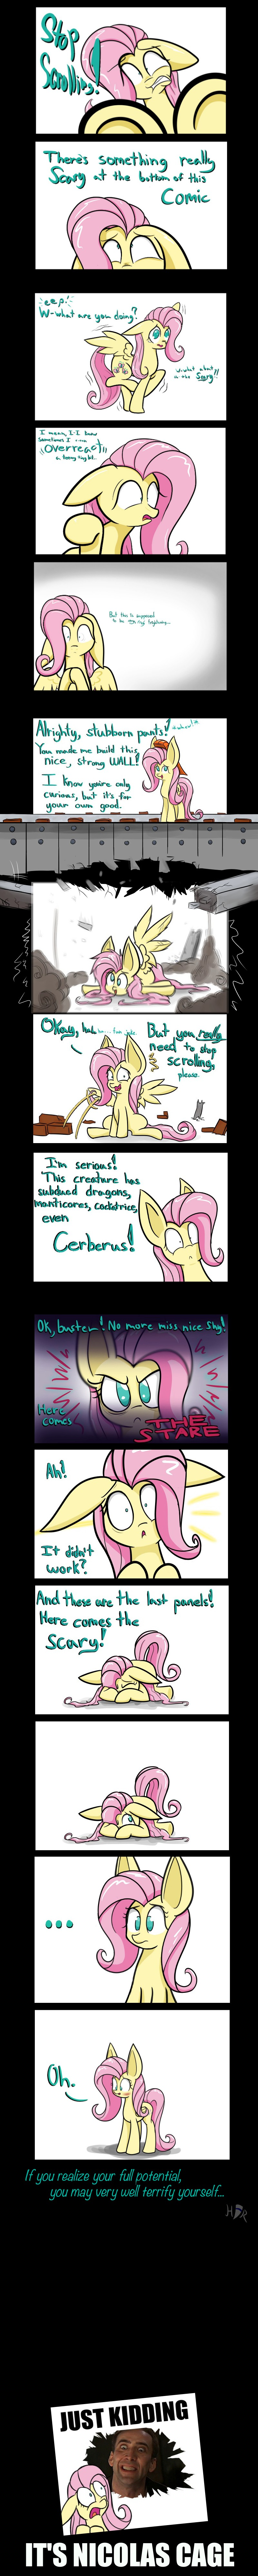 There's a Monster at The End of This Comic by Heir-of-Rick